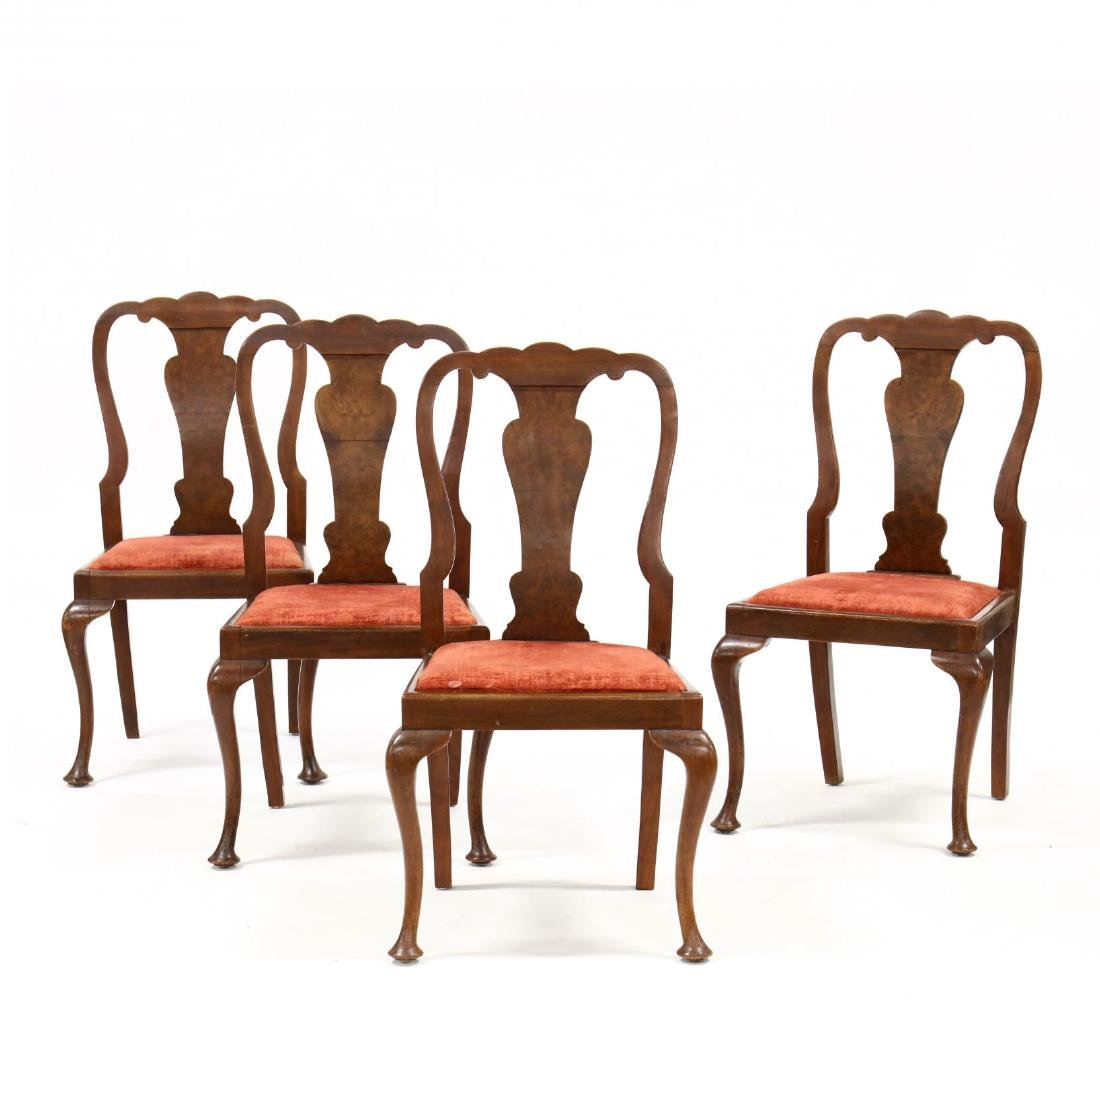 Set of Four Queen Anne Style Dining Chairs